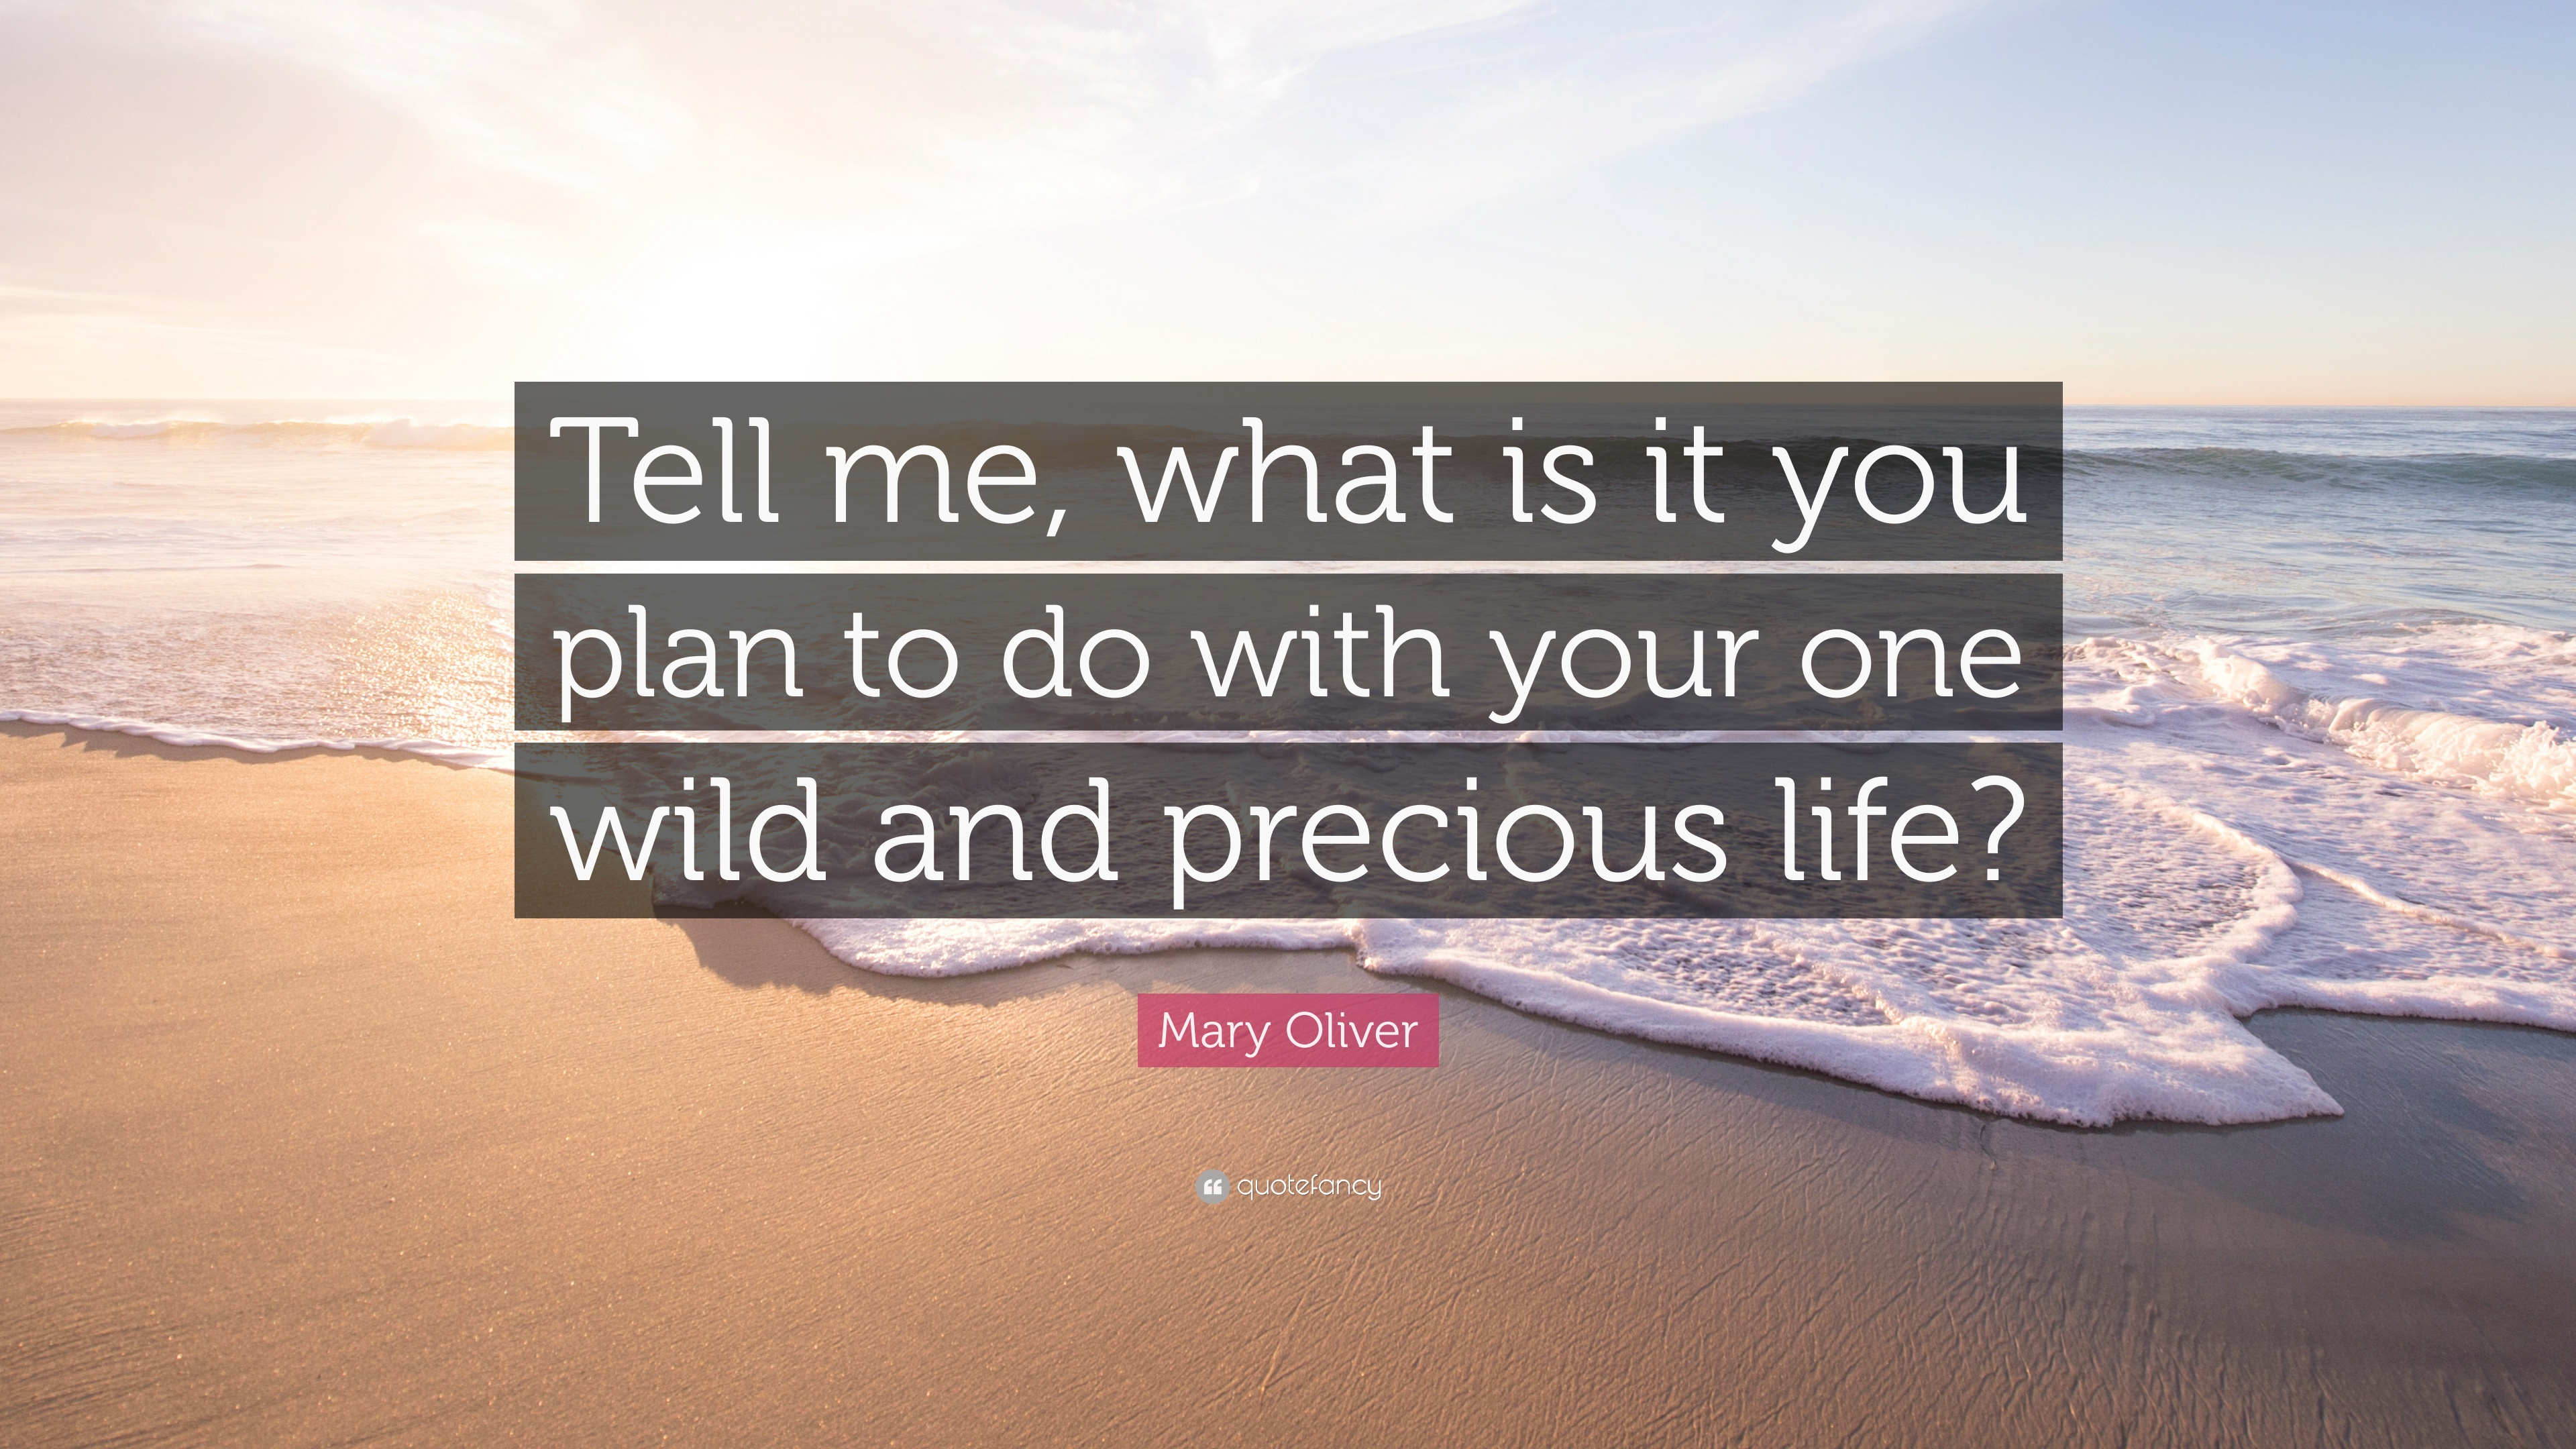 mary oliver quote   u201ctell me  what is it you plan to do with your one wild and precious life